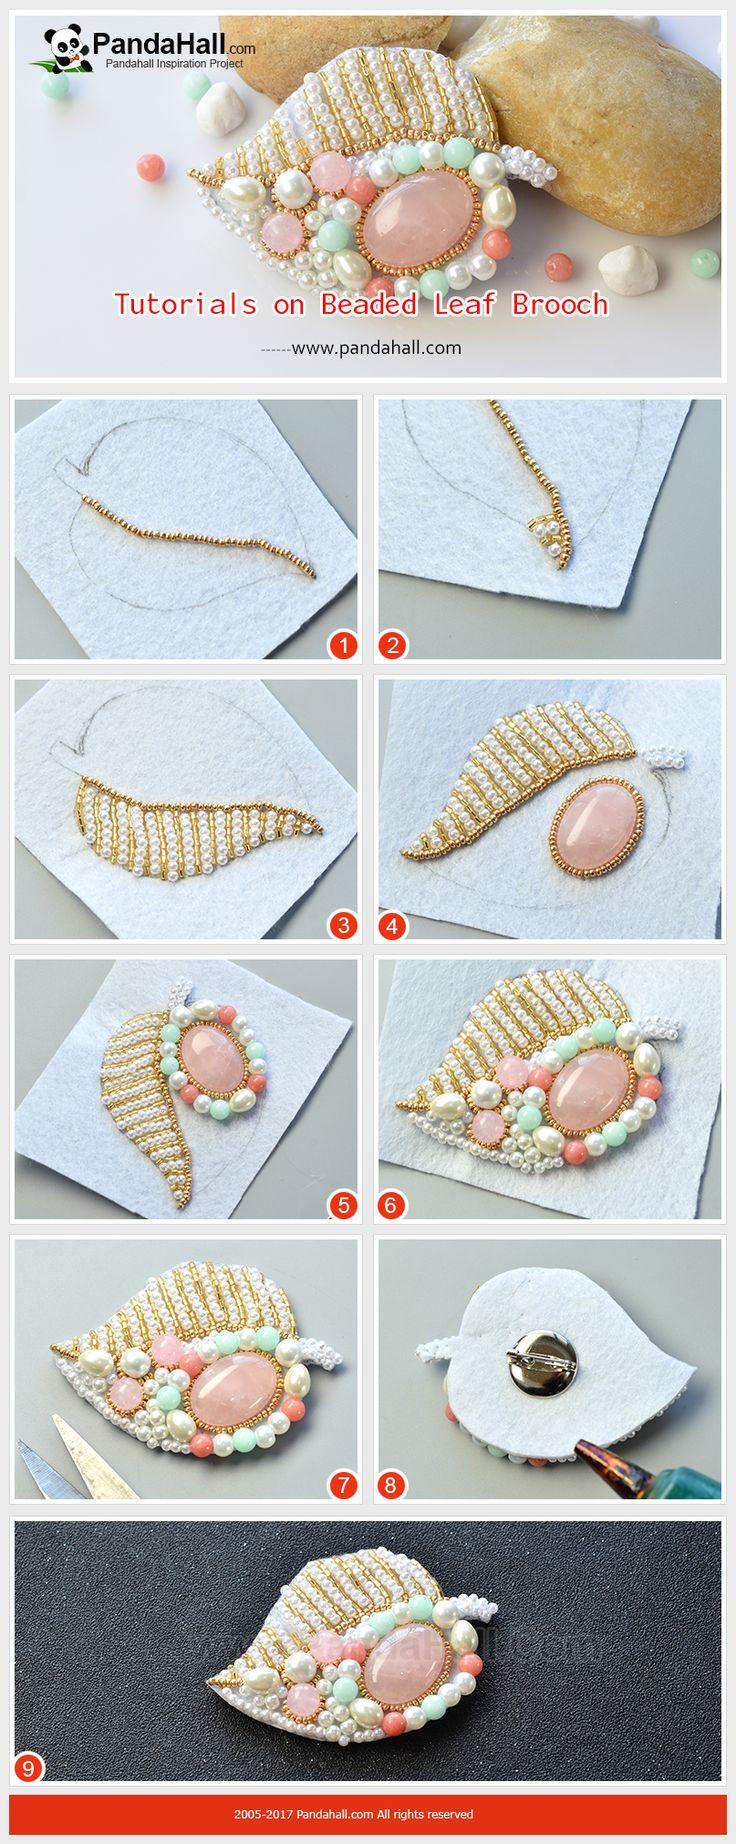 Tutorials on Beaded Leaf Brooch The main materials of the brooch are glass pearl beads, gold seed beads and gemstone beads. The making way is to braid the beads together. Wearing the brooch will show your female elegance and delicacy!